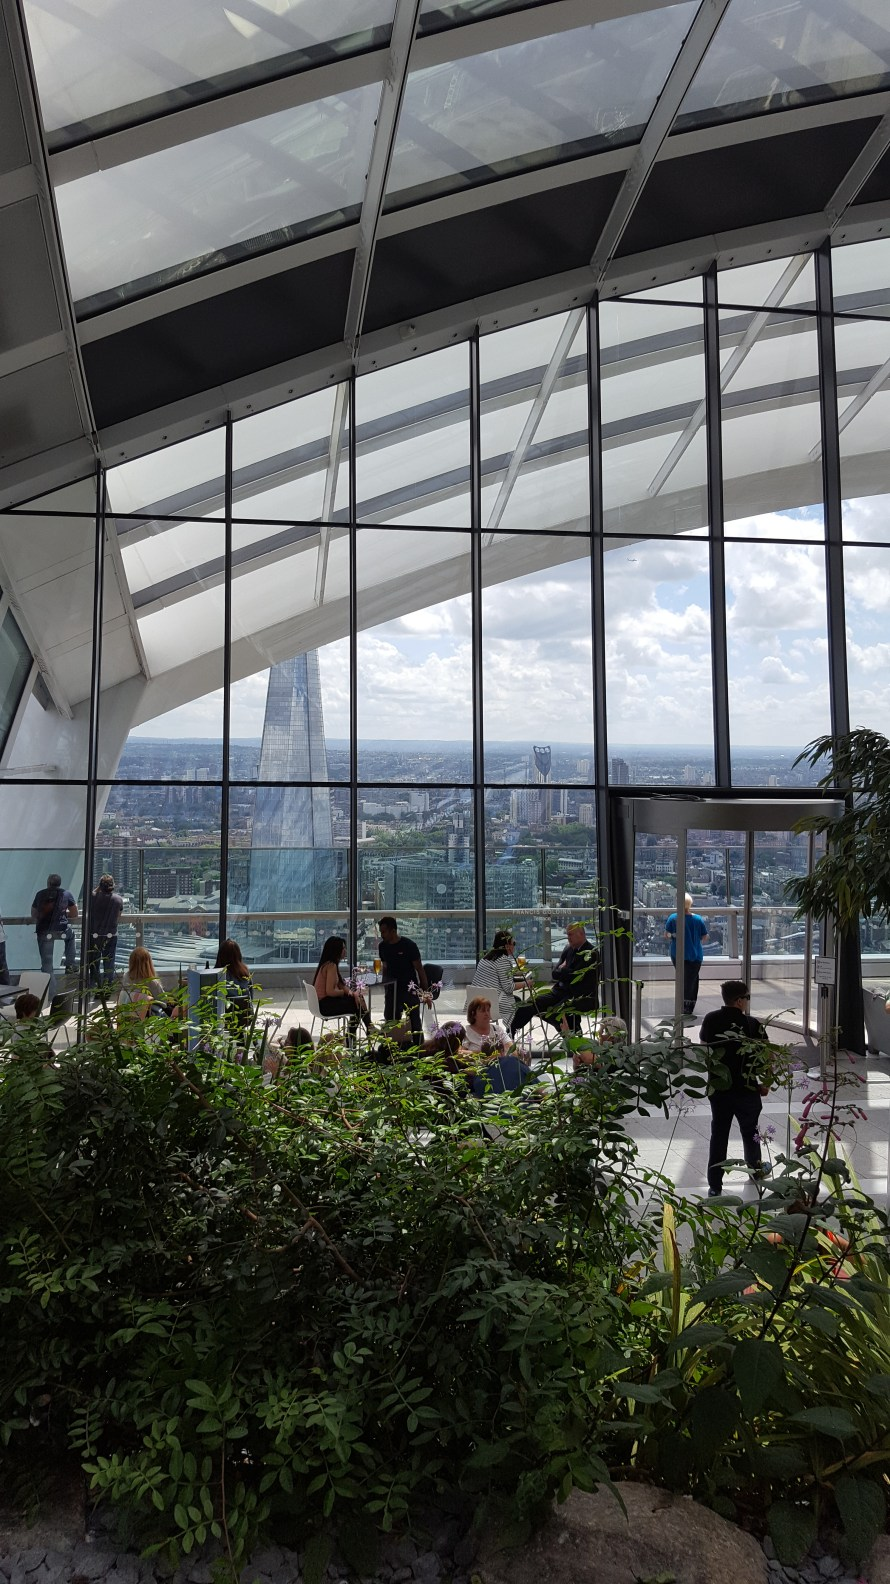 Tips for Visiting the free Sky Garden London